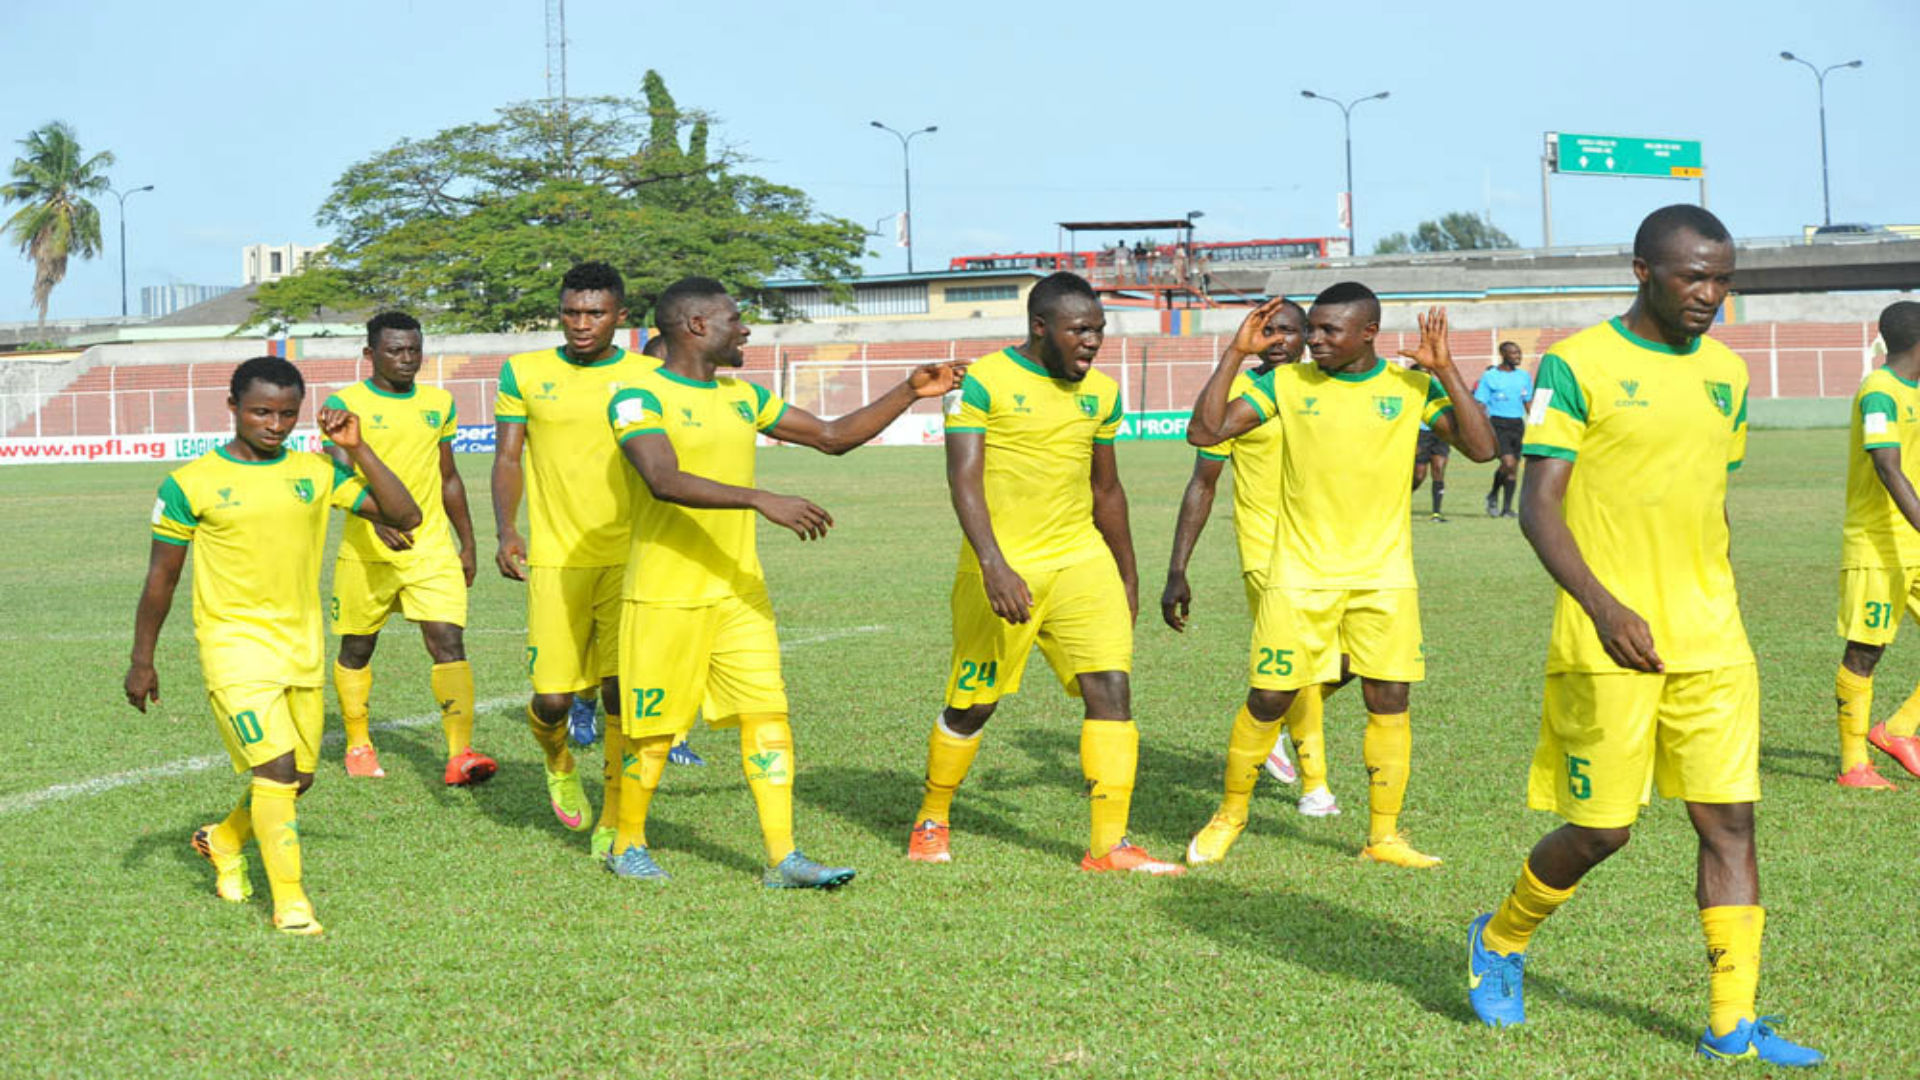 The management of Plateau United FC of Jos has condoled with the Nigeria Football Federation (NFF), over demise of its staff, Tolulope Abe. Plateau United Media Officer, Albert Dakup, in a condolence message on Monday in Jos, described the deceased as a 'hard-working person who discharged his duties diligently'. The News Agency of Nigeria reports […]